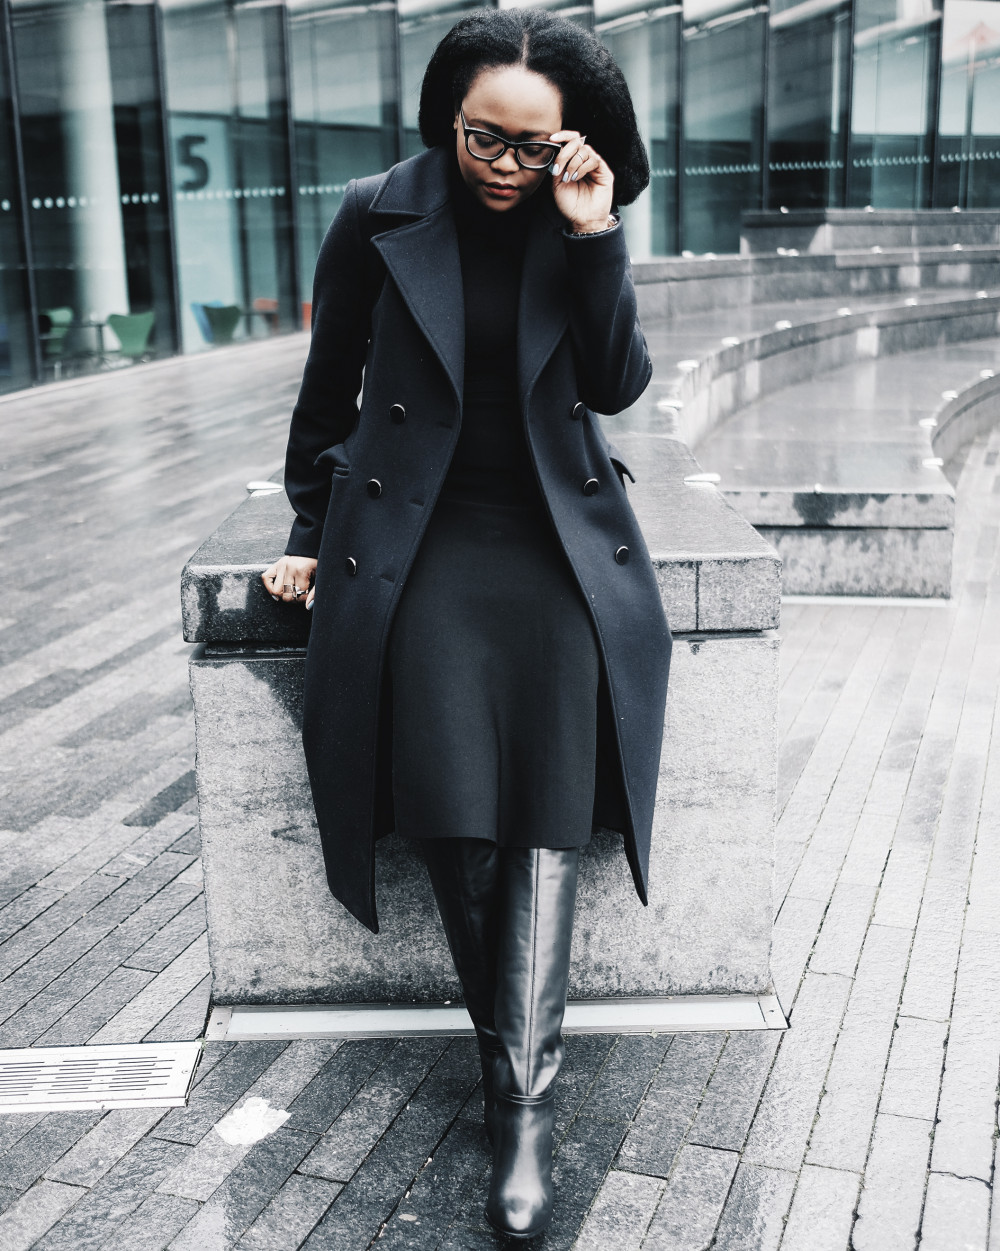 london fashion bloggers, iamnrc, reiss coat, uk fashion blogger